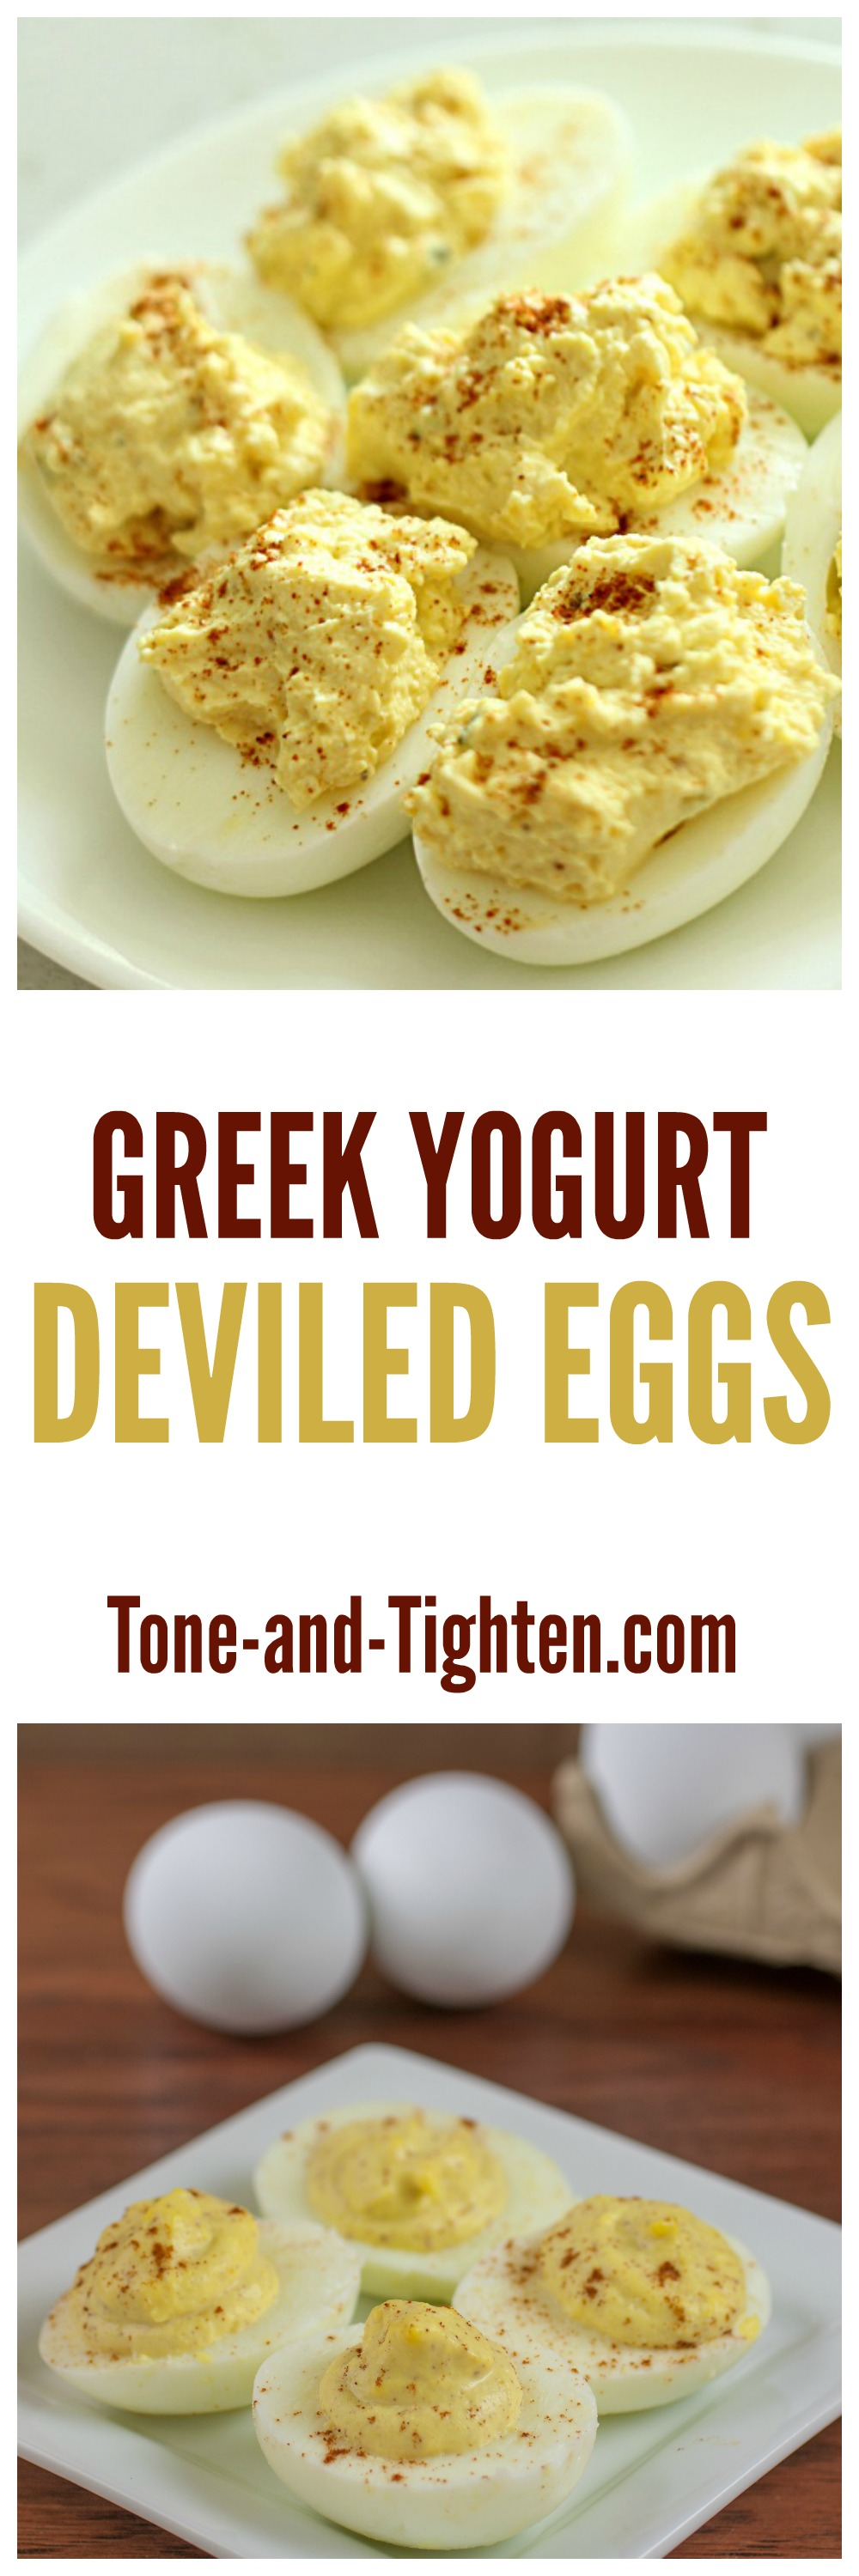 Greek Yogurt Deviled Eggs from Tone-and-Tighten.com